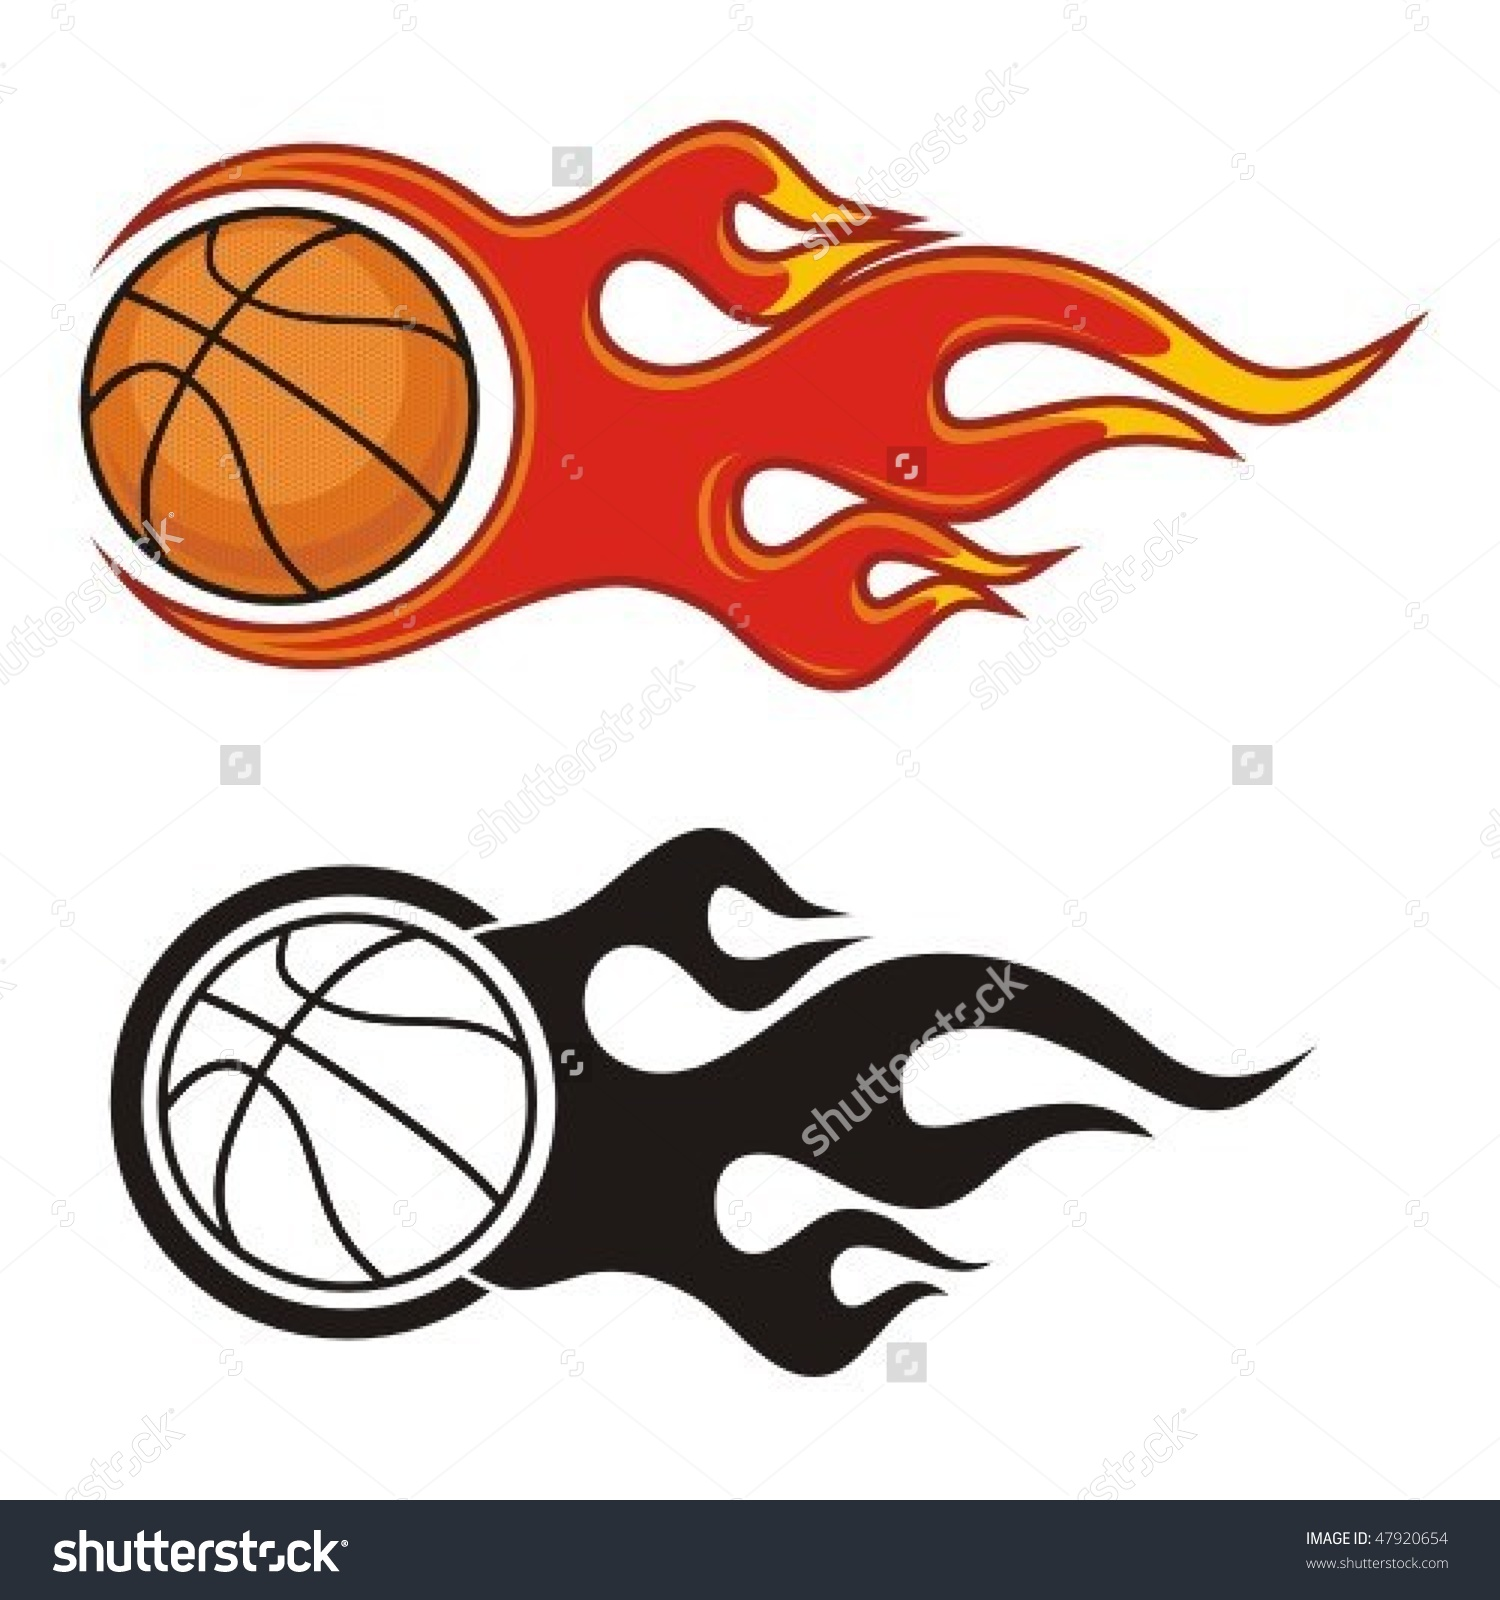 Flaming basketball clipart royalty free download Flaming Basketball Ball Vector Illustration Stock Vector 47920654 ... royalty free download